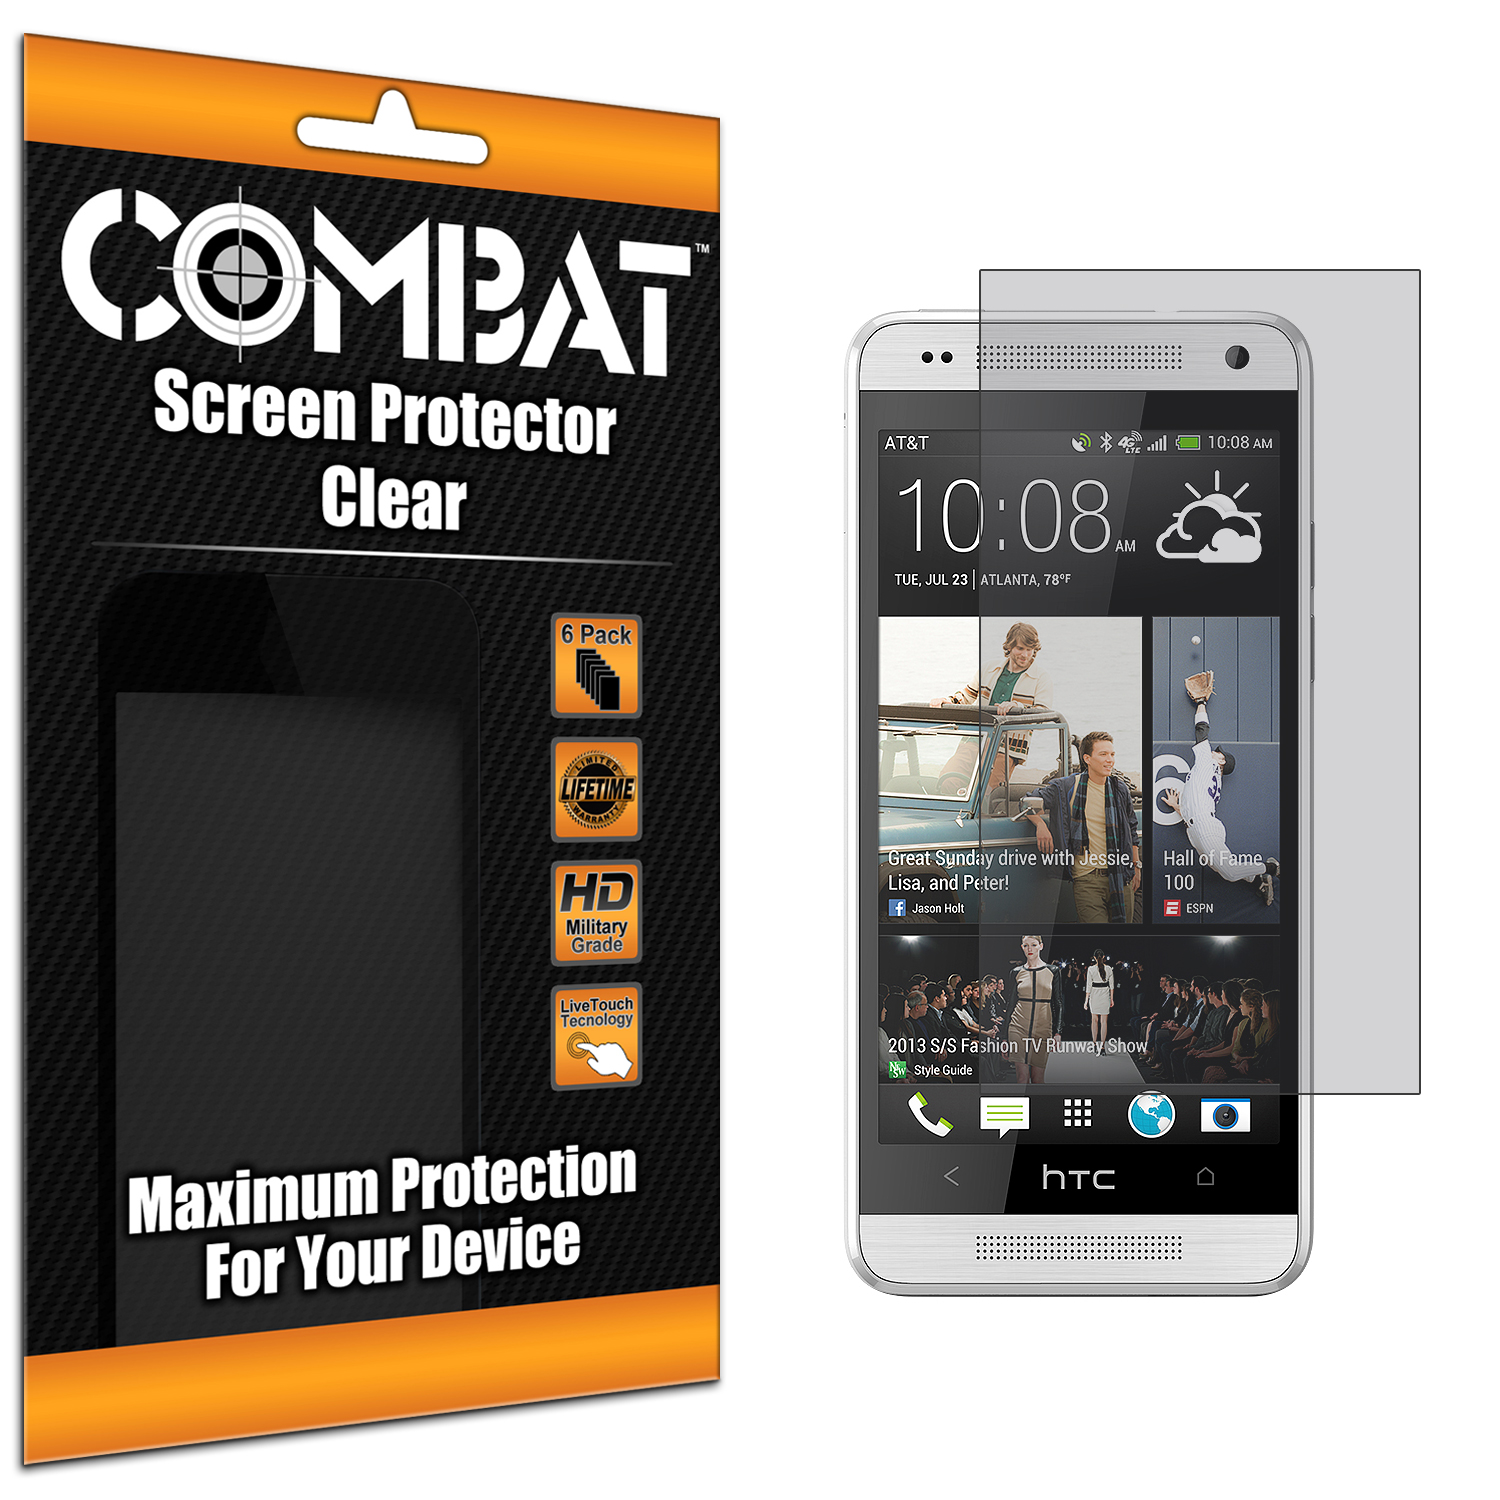 HTC One Mini Combat 6 Pack Anti-Glare Matte Screen Protector